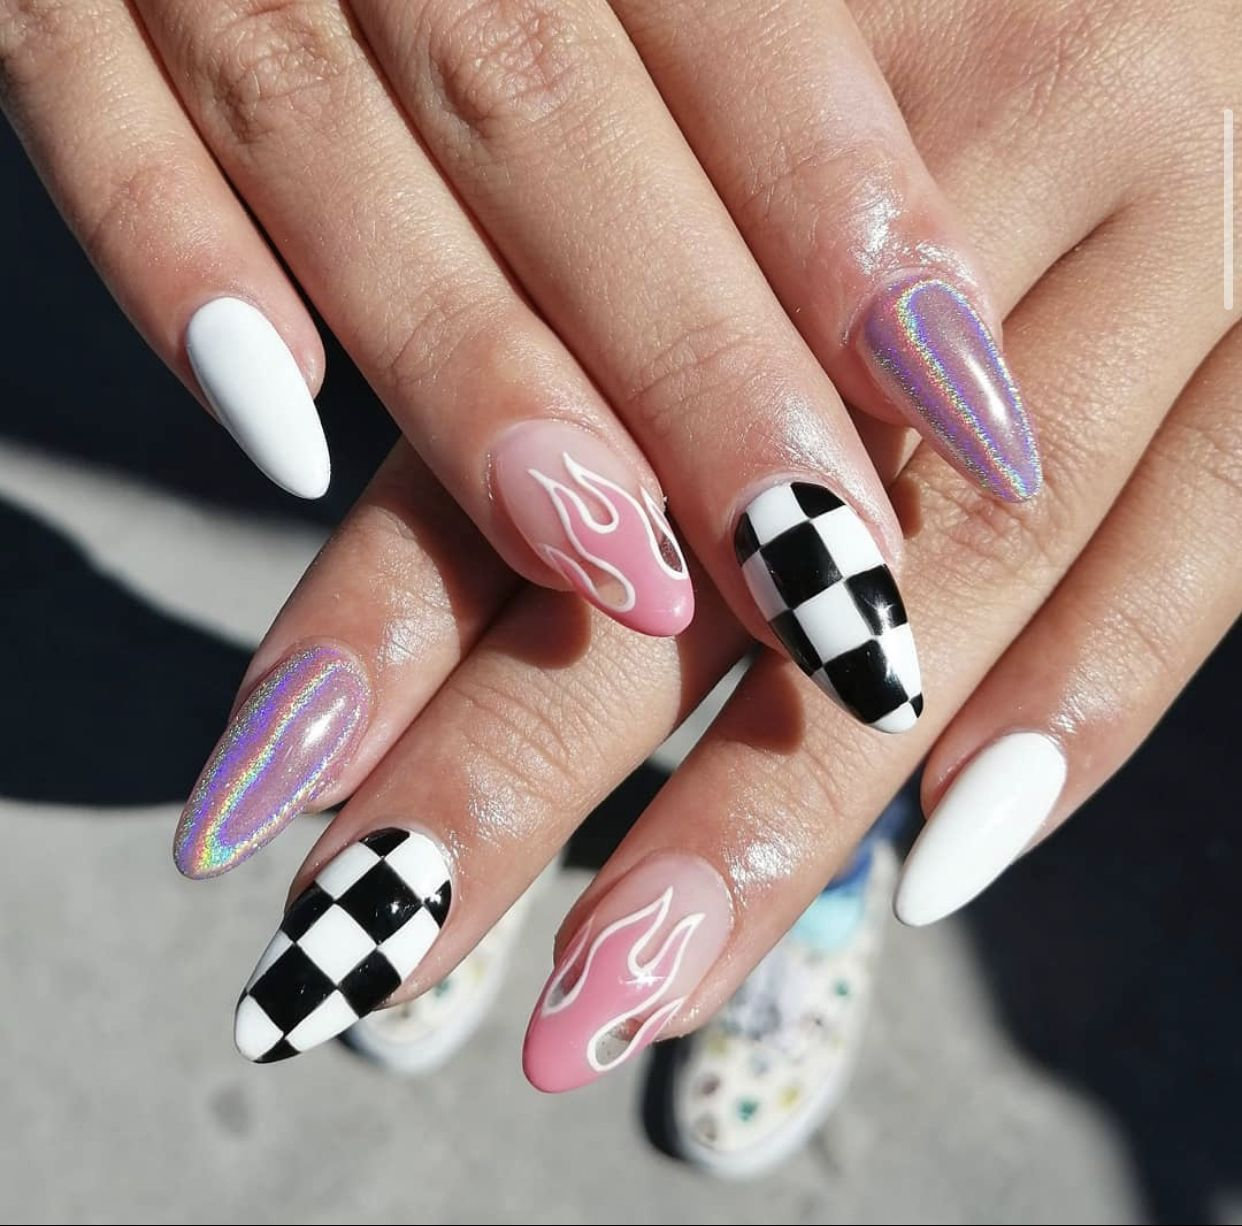 Trendy Edgy Checkered Glitter Flame Stiletto Acrylic Nails In 2020 Grunge Nails Checkered Nails Edgy Nails